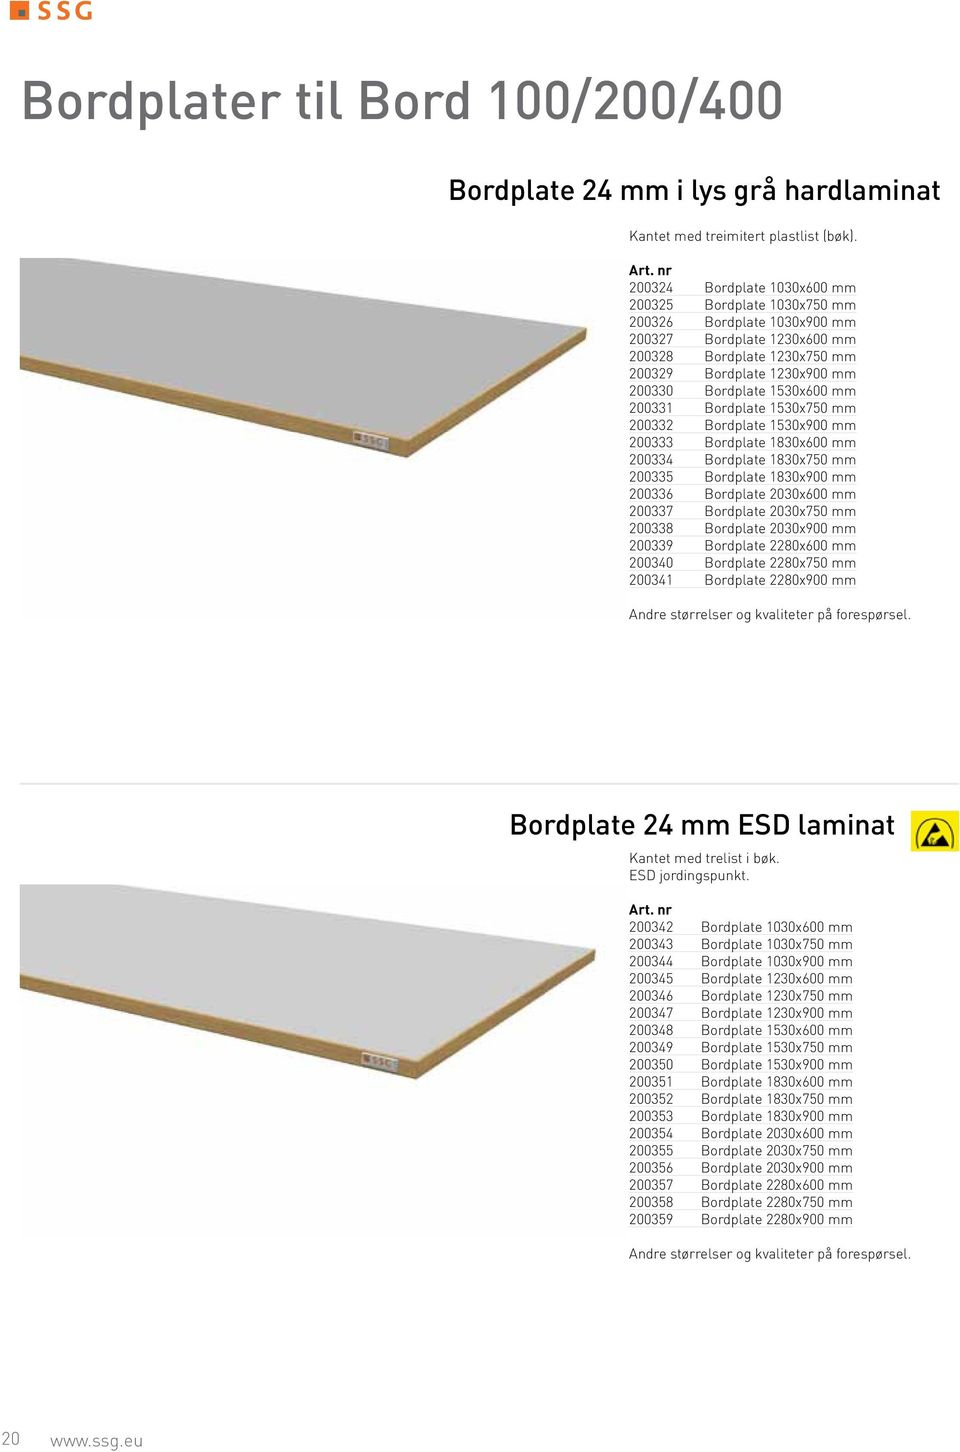 1530x600 mm 200331 Bordplate 1530x750 mm 200332 Bordplate 1530x900 mm 200333 Bordplate 1830x600 mm 200334 Bordplate 1830x750 mm 200335 Bordplate 1830x900 mm 200336 Bordplate 2030x600 mm 200337